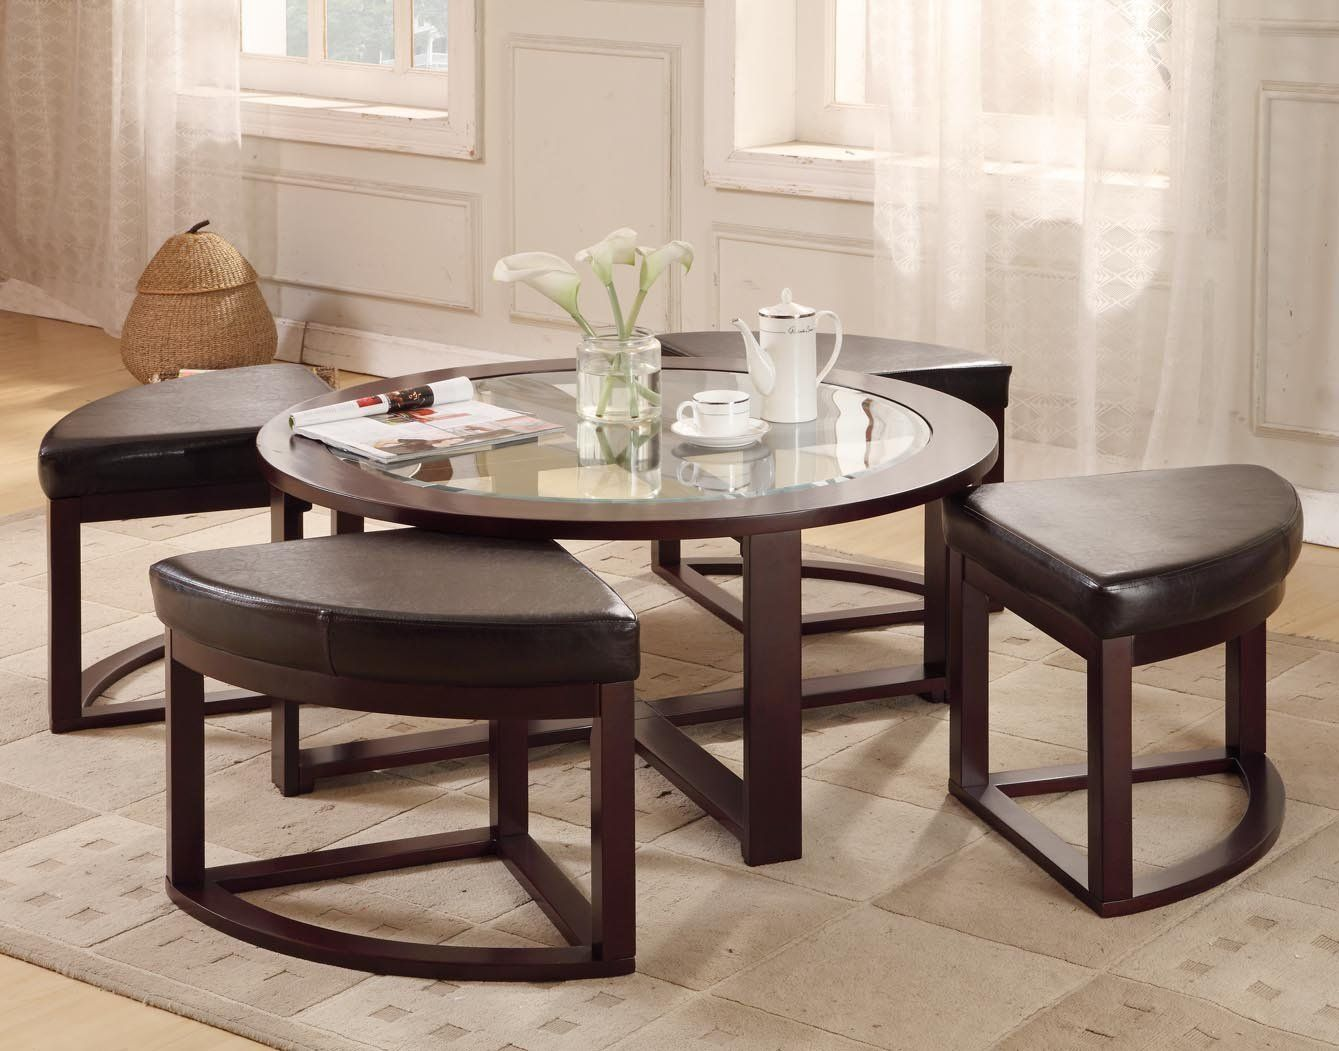 40 round coffee table with 4 wedge stools espresso